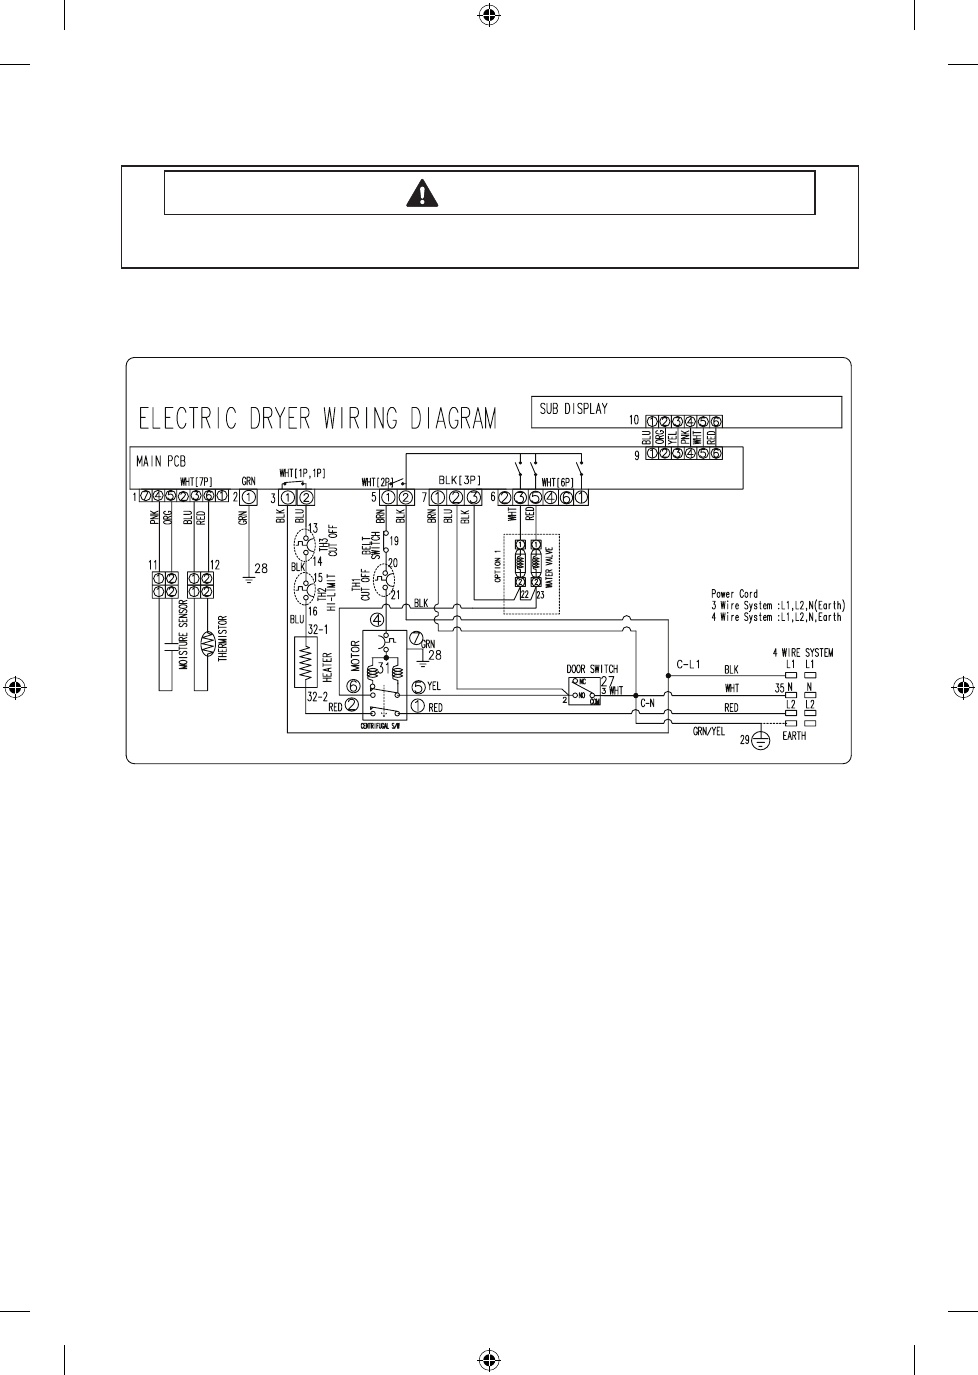 frigidaire dryer wiring diagram frigidaire image frigidaire dryer wiring diagram wiring diagram and hernes on frigidaire dryer wiring diagram